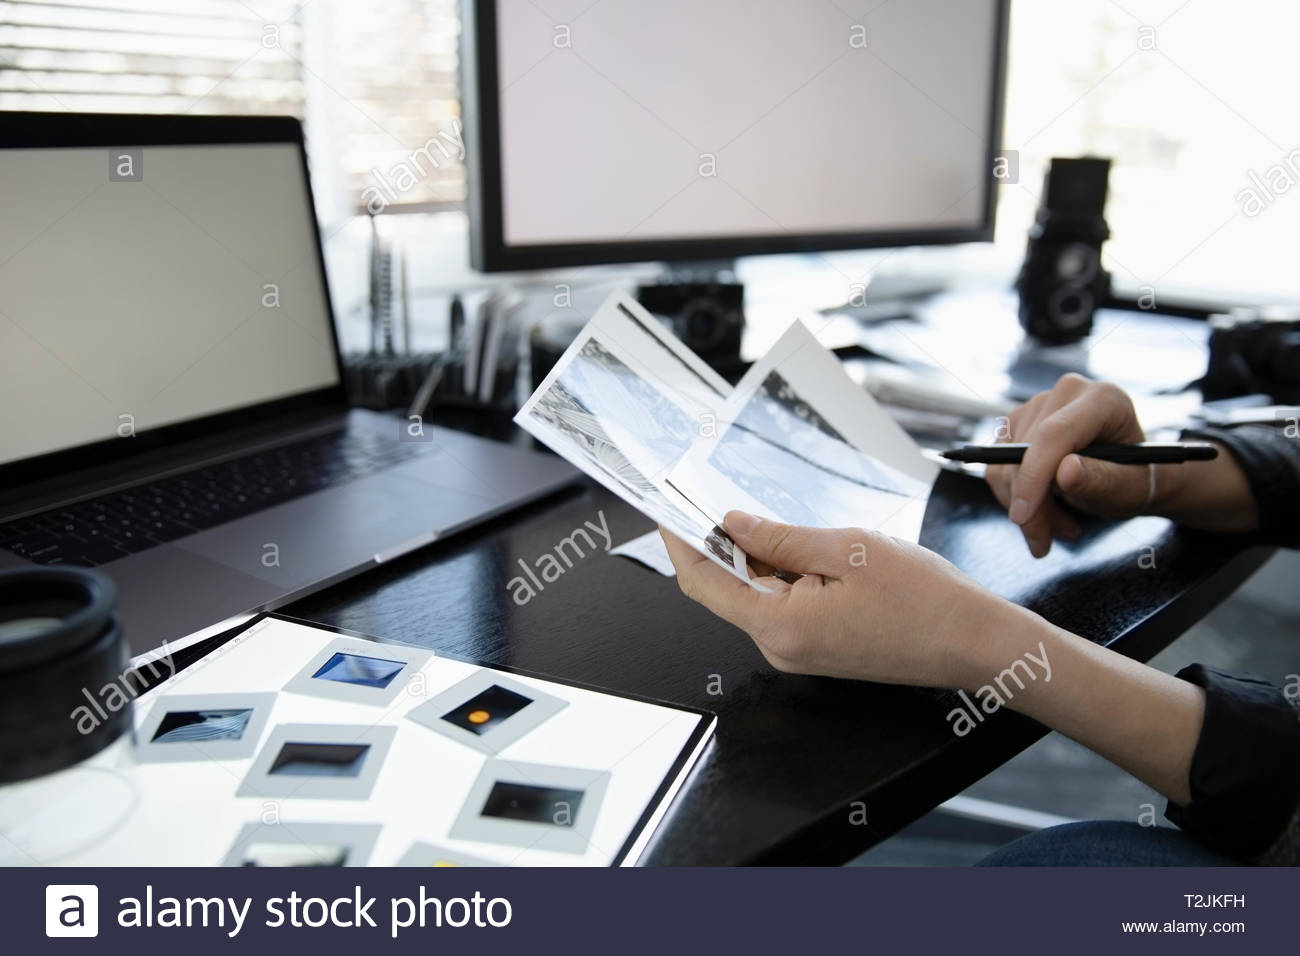 Photographer reviewing photograph negatives at desk - Stock Image